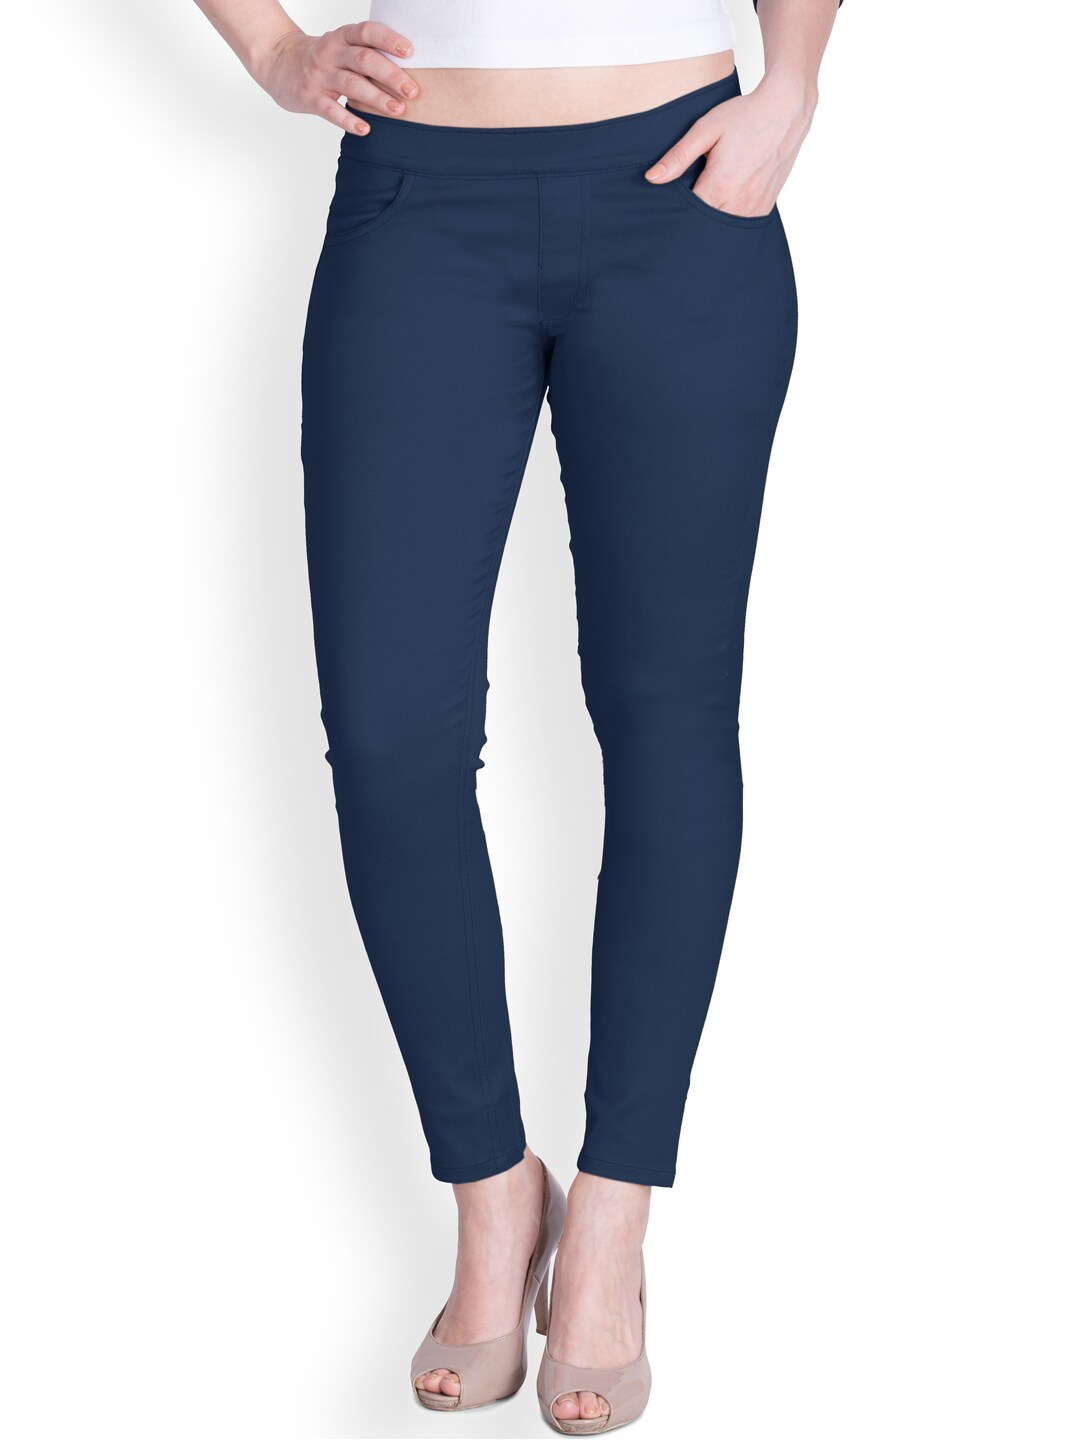 Lux Lyra Navy Blue Jeggings image